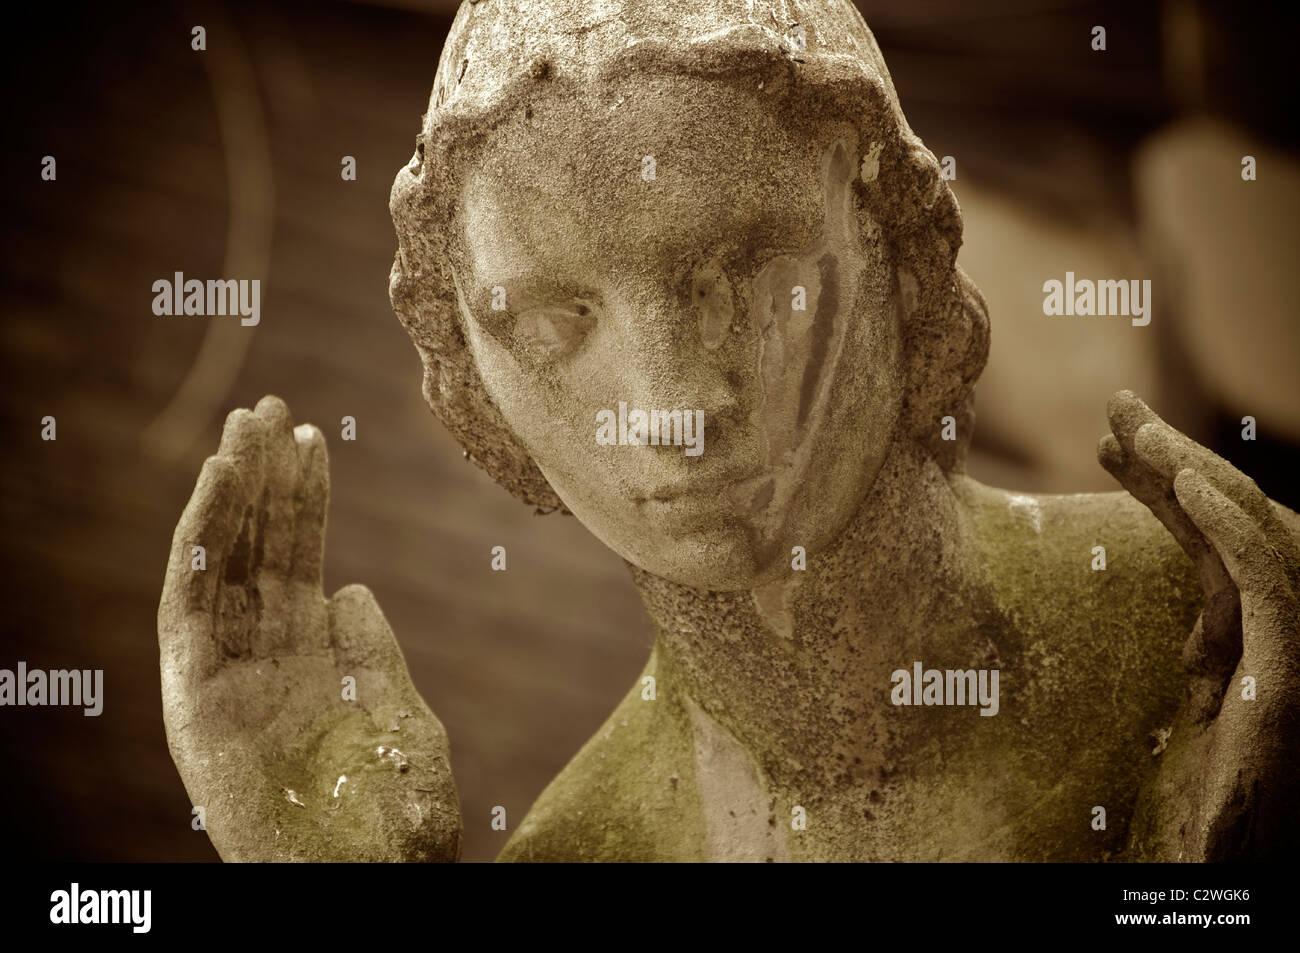 Statue at St James Church, Piccadilly, London. England. - Stock Image